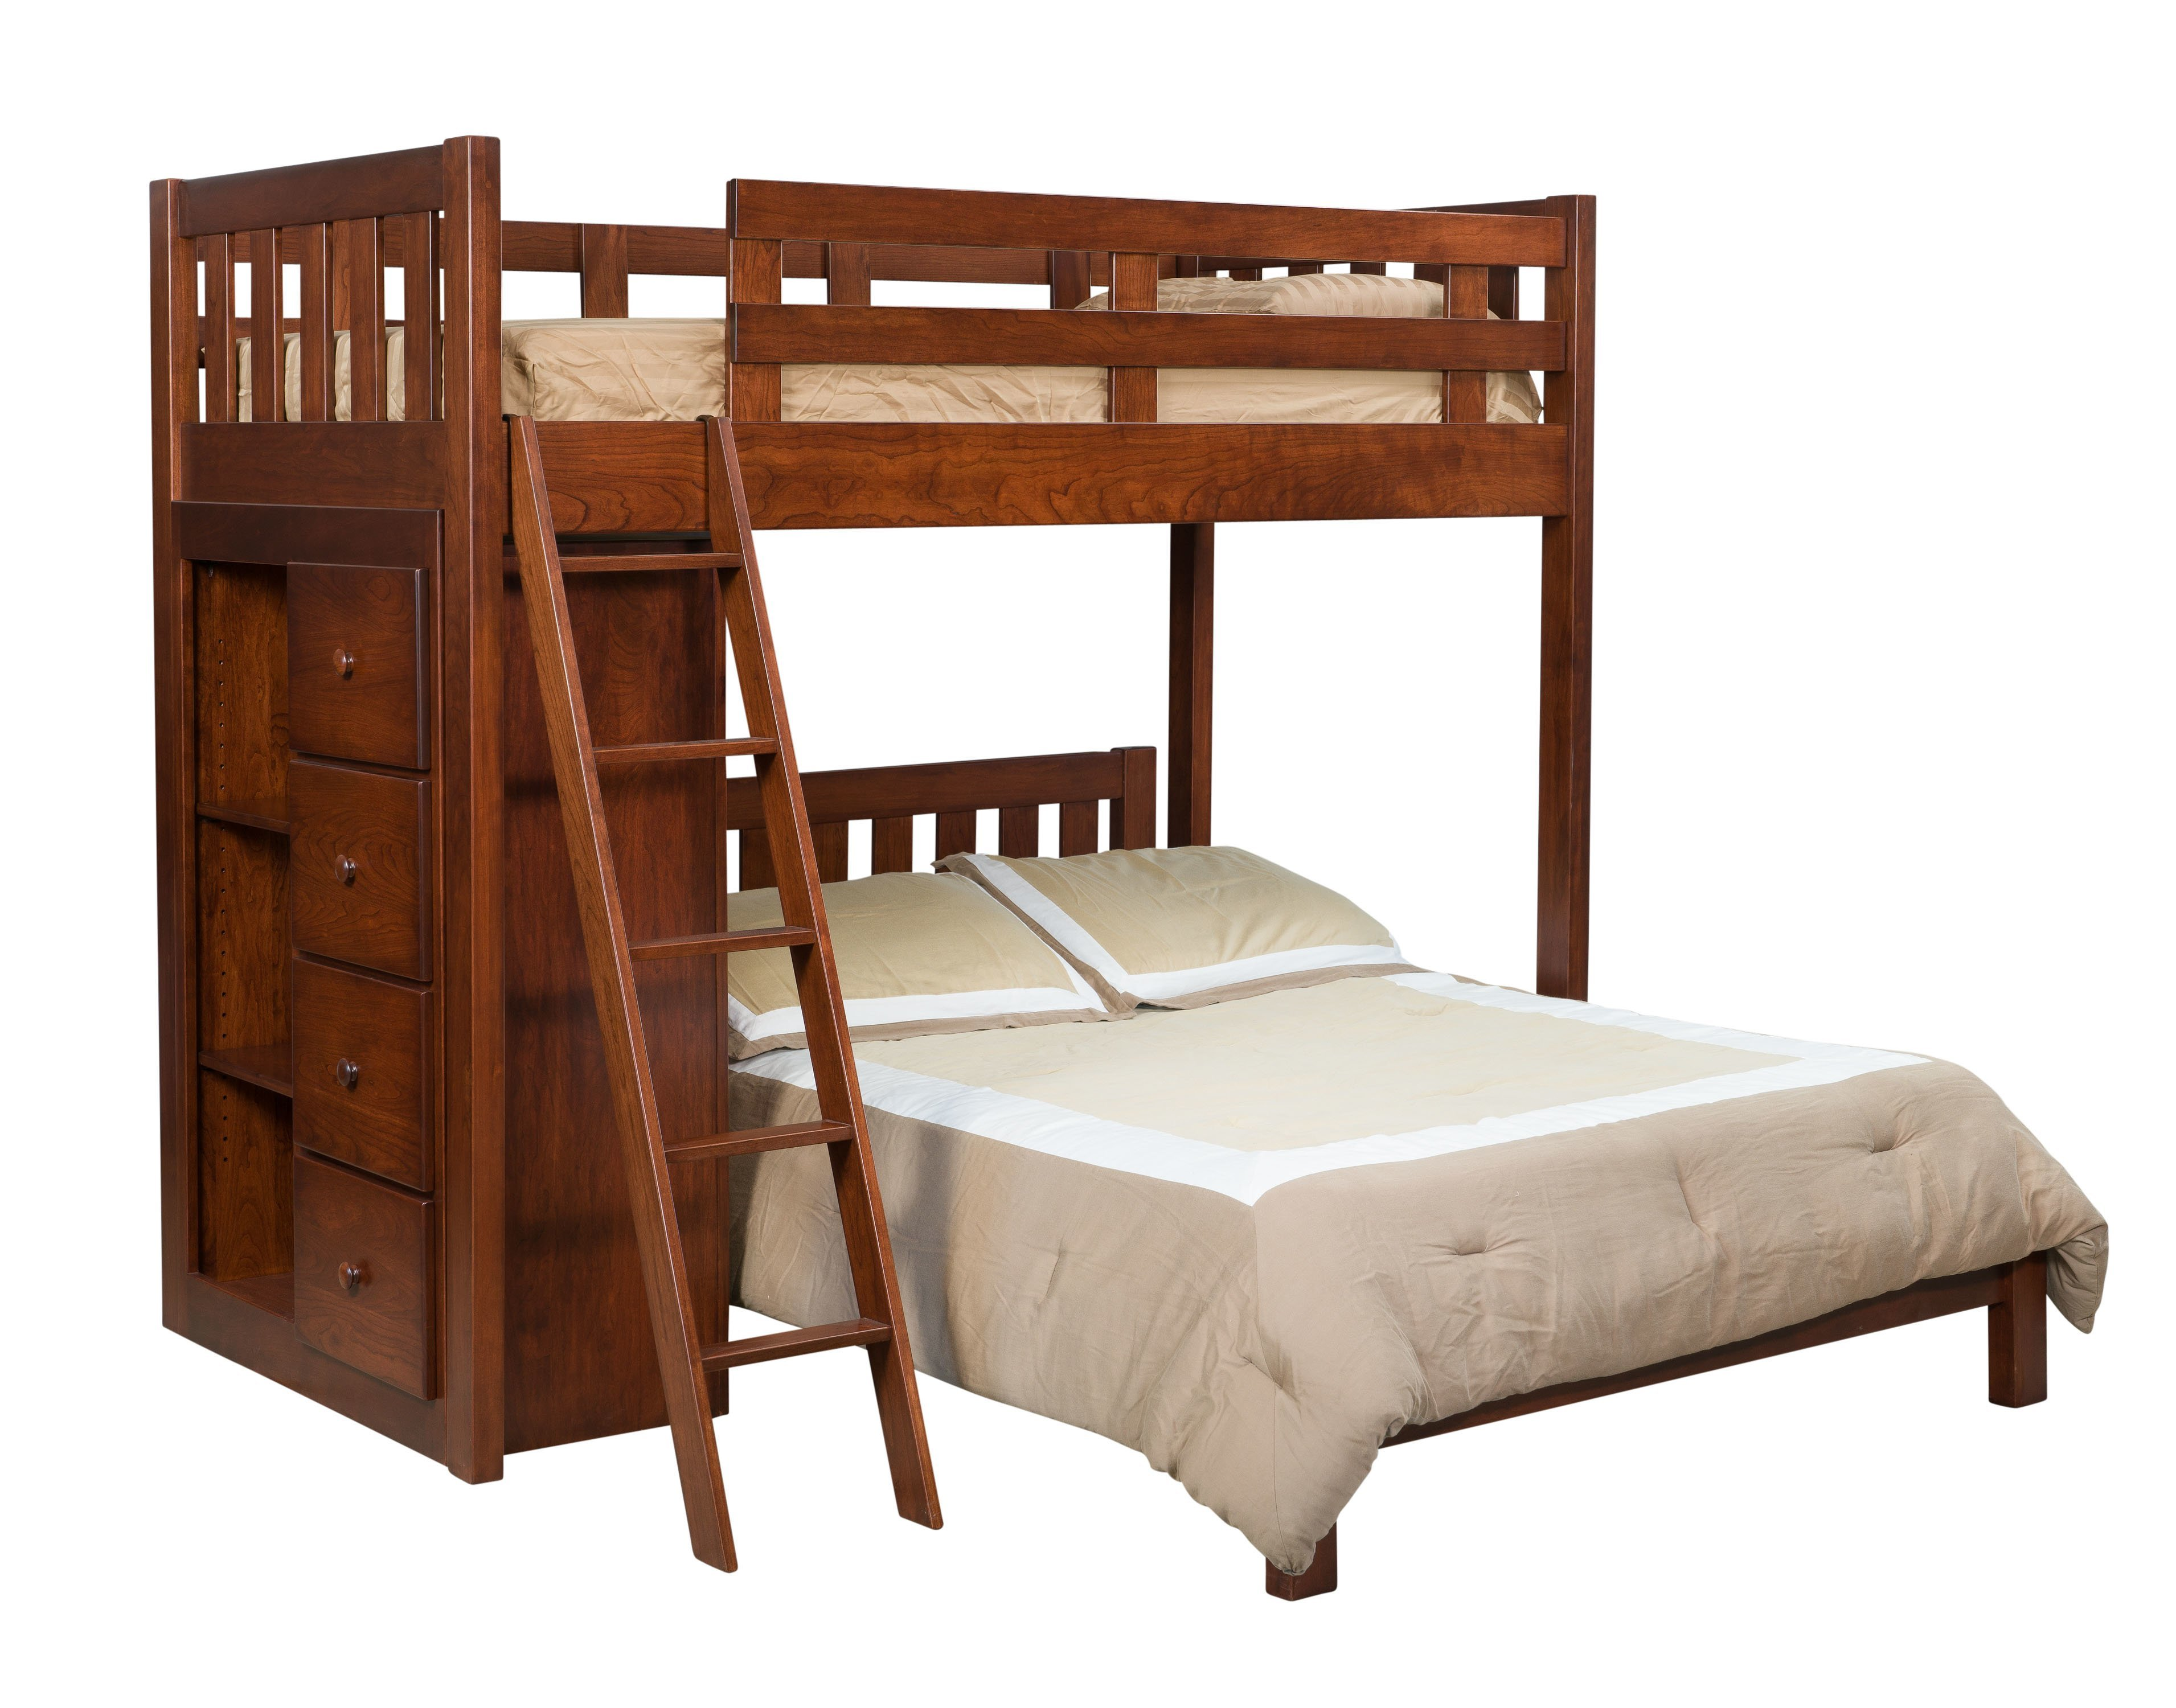 Picture of: Kids Twin Over Full Bunk Bed With Bookcase From Dutchcrafters Amish